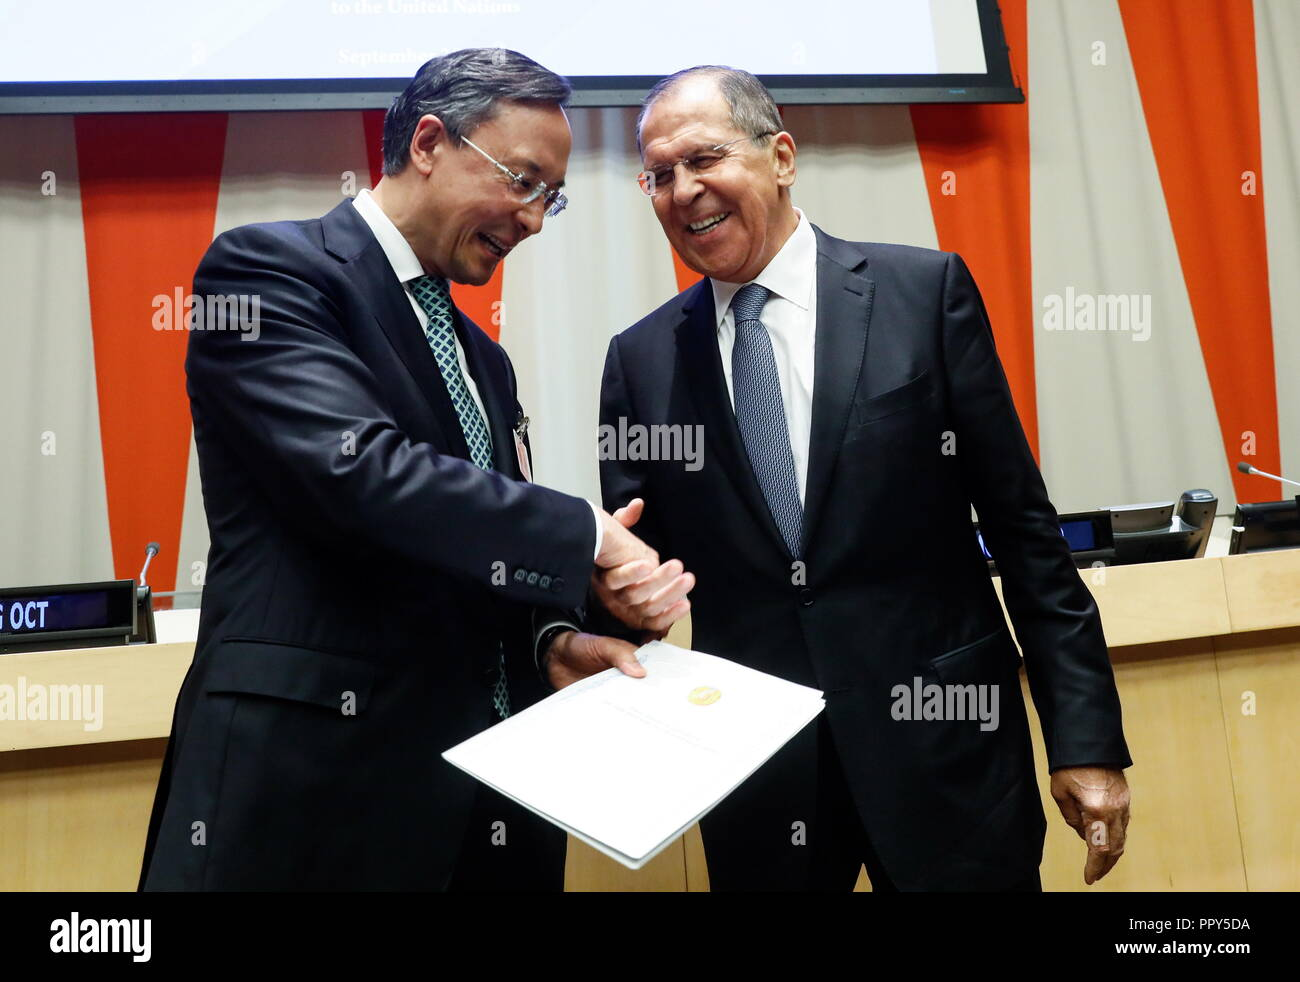 "New York City, USA. 29th Sep, 2018. NEW YORK CITY, USA - SEPTEMBER 28, 2018: Kazakhstan's Foreign Minister Kairat Abdrakhmanov (L) and Russia's Foreign Minister Sergei Lavrov during a ceremony to sign the ""Codex to achieve the world free from terrorism"" prepared by Kazakhstan on the sidelines of the 73rd session of the United Nations General Assembly at the UN headquarters. Alexander Shcherbak/TASS Credit: ITAR-TASS News Agency/Alamy Live News Stock Photo"